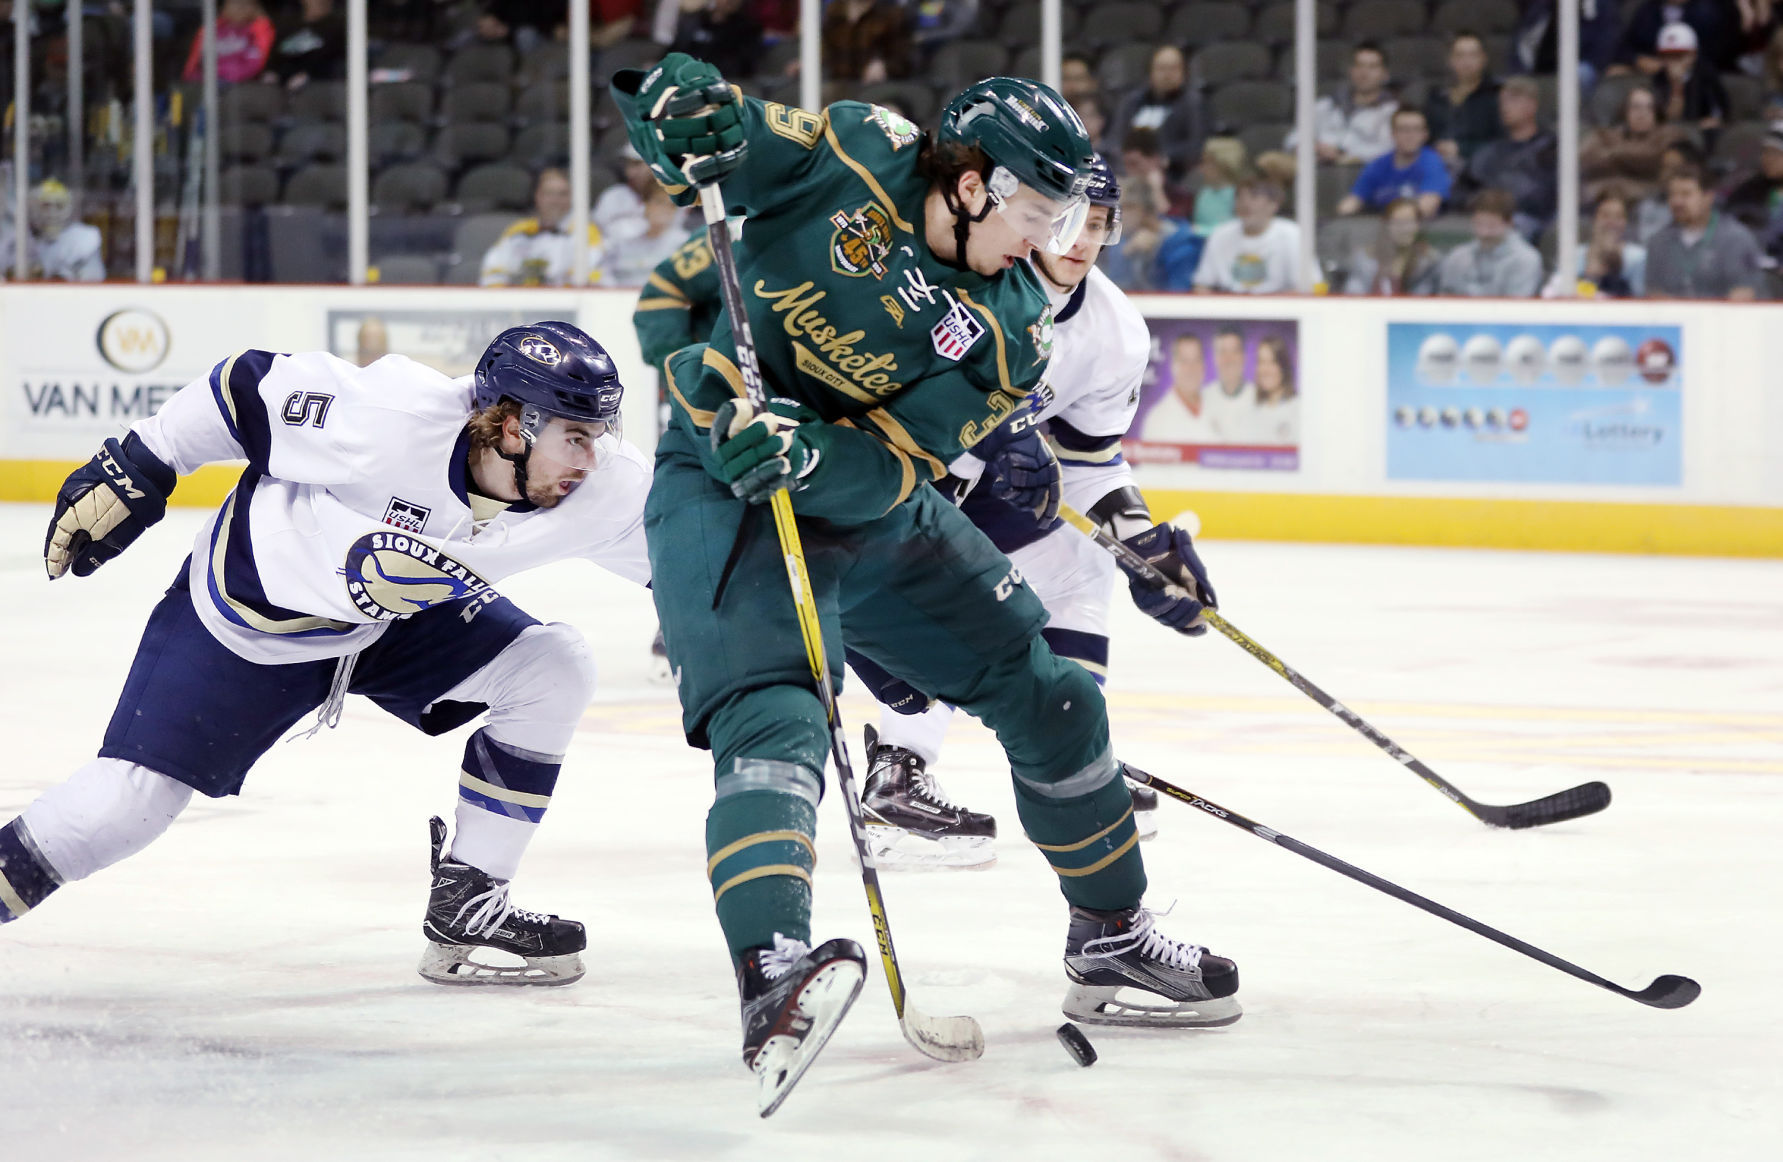 USHL: Musketeers' Success Rooted In Several Factors